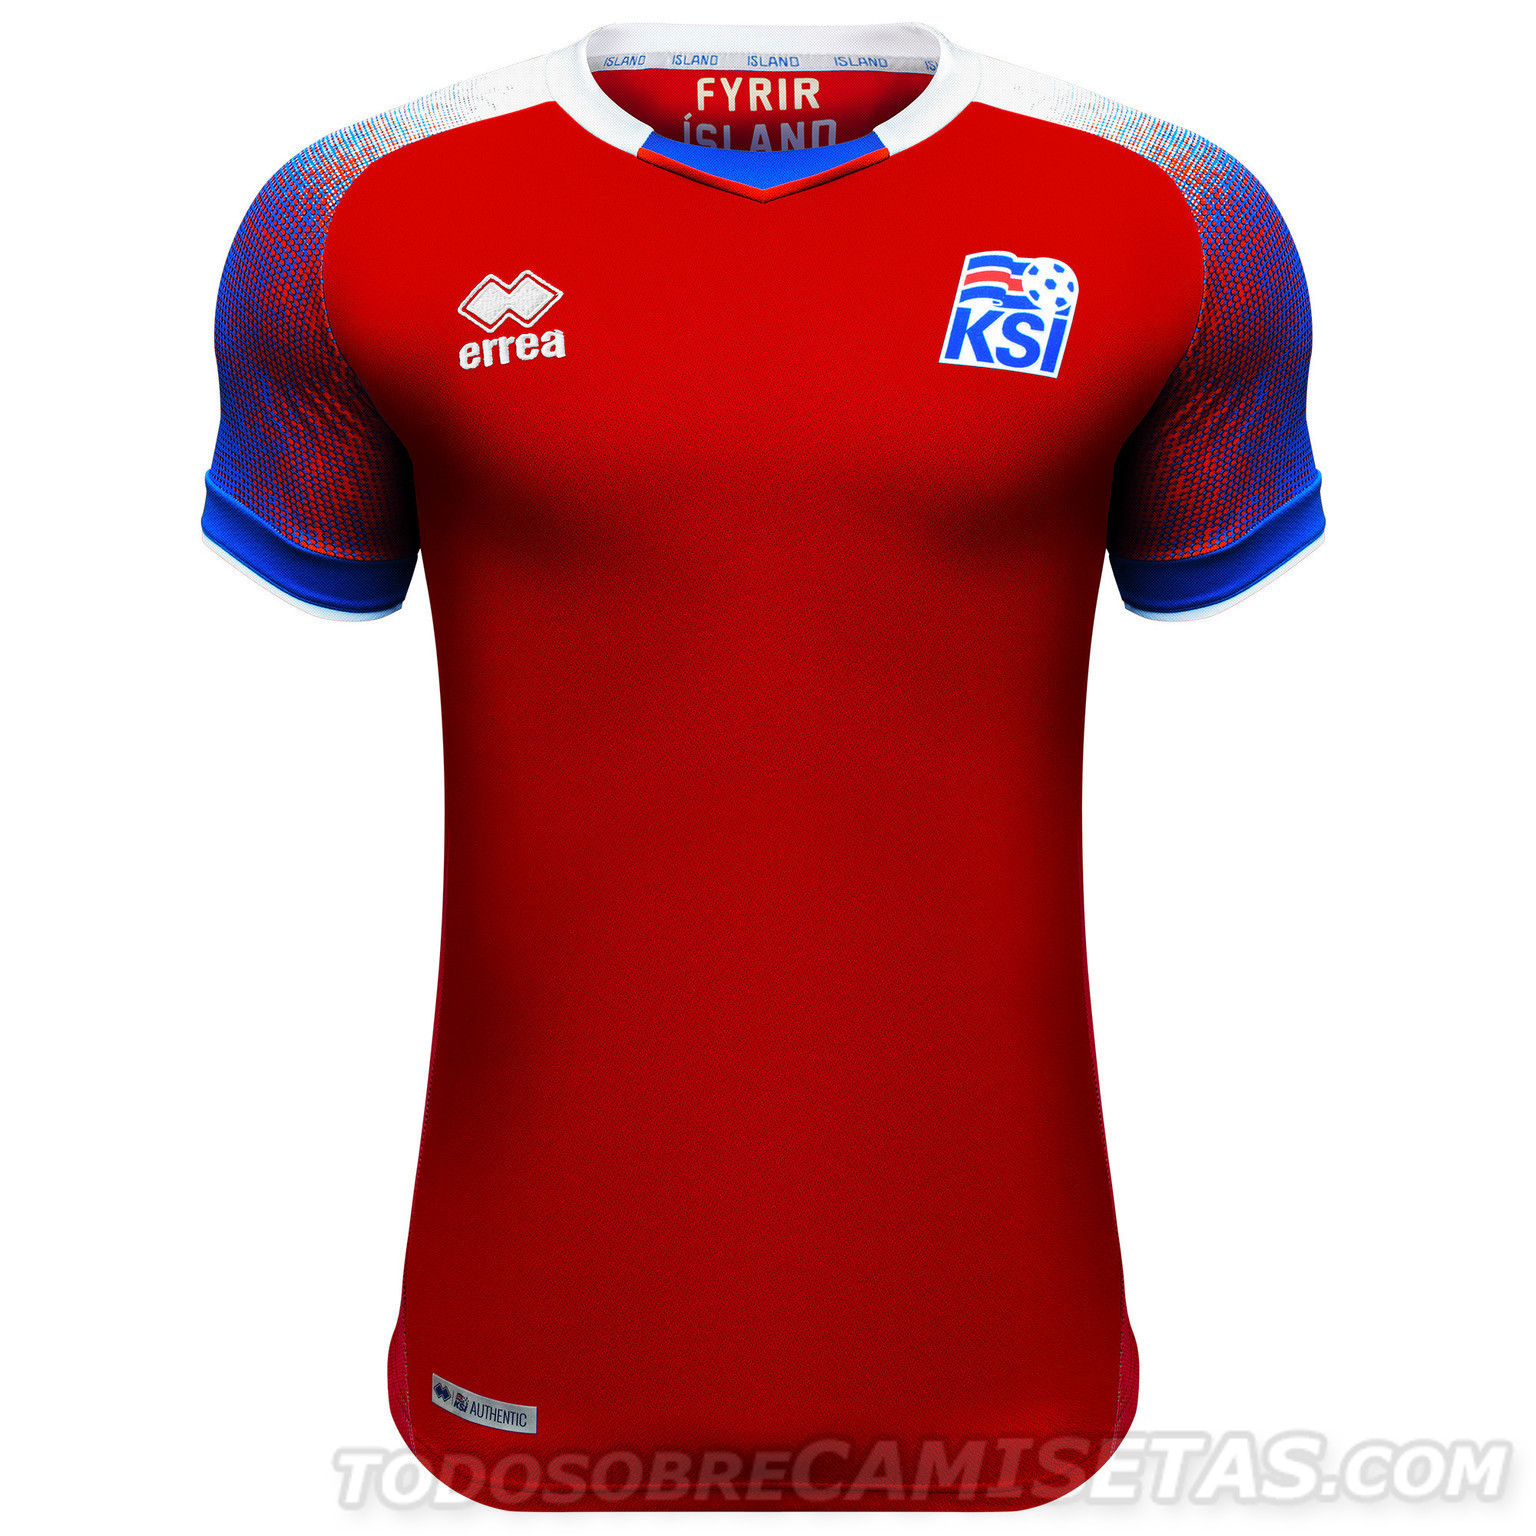 iceland-2018-world-cup-kits-errea-3.jpg